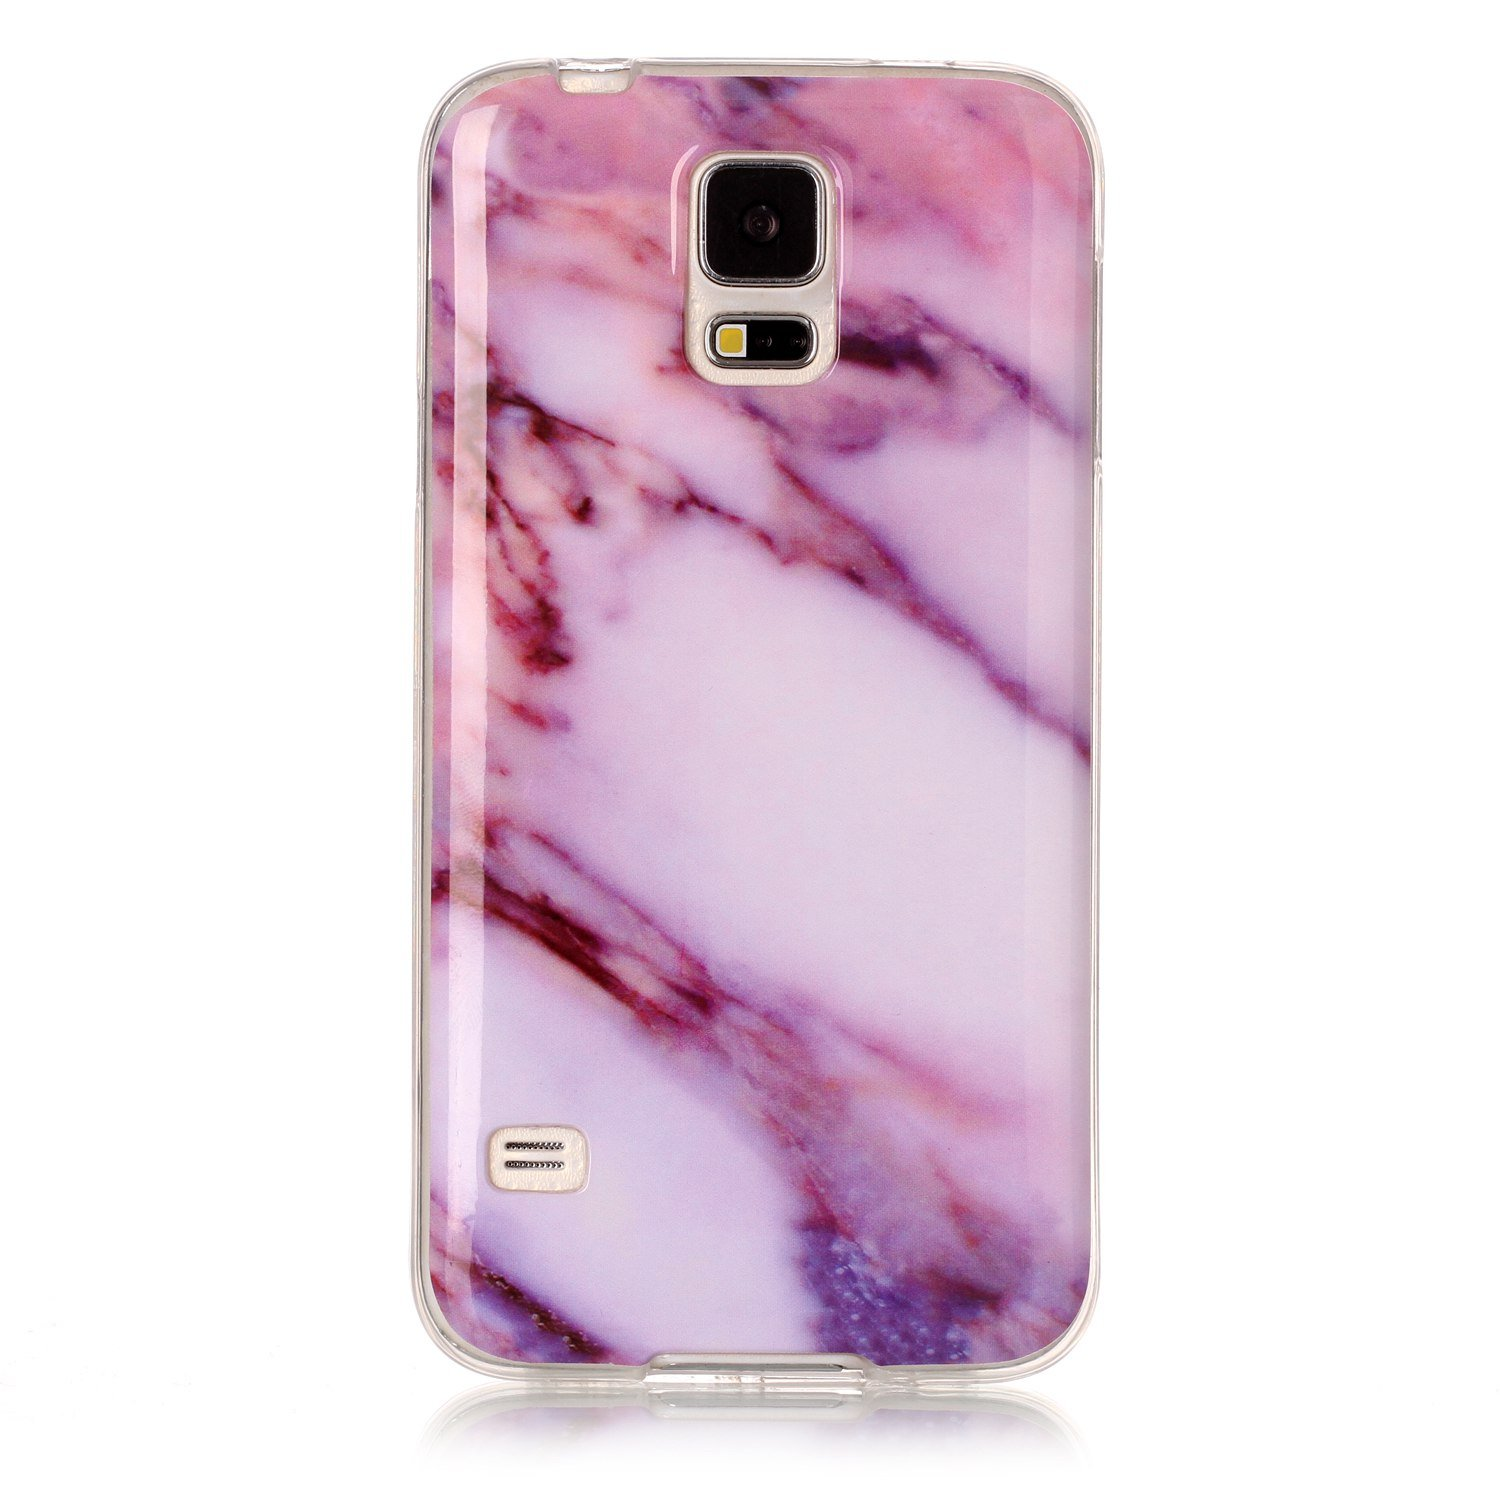 For Samsung Galaxy S5 Marble Case Blue and Gray,OYIME Unique Luxury Glitter Colorful Plating Pattern Skin Design Clear Silicone Rubber Slim Fit Ultra Thin Protective Back Cover Glossy Soft Gel TPU Shell Shockproof Drop Protection Protective Transparent Bum